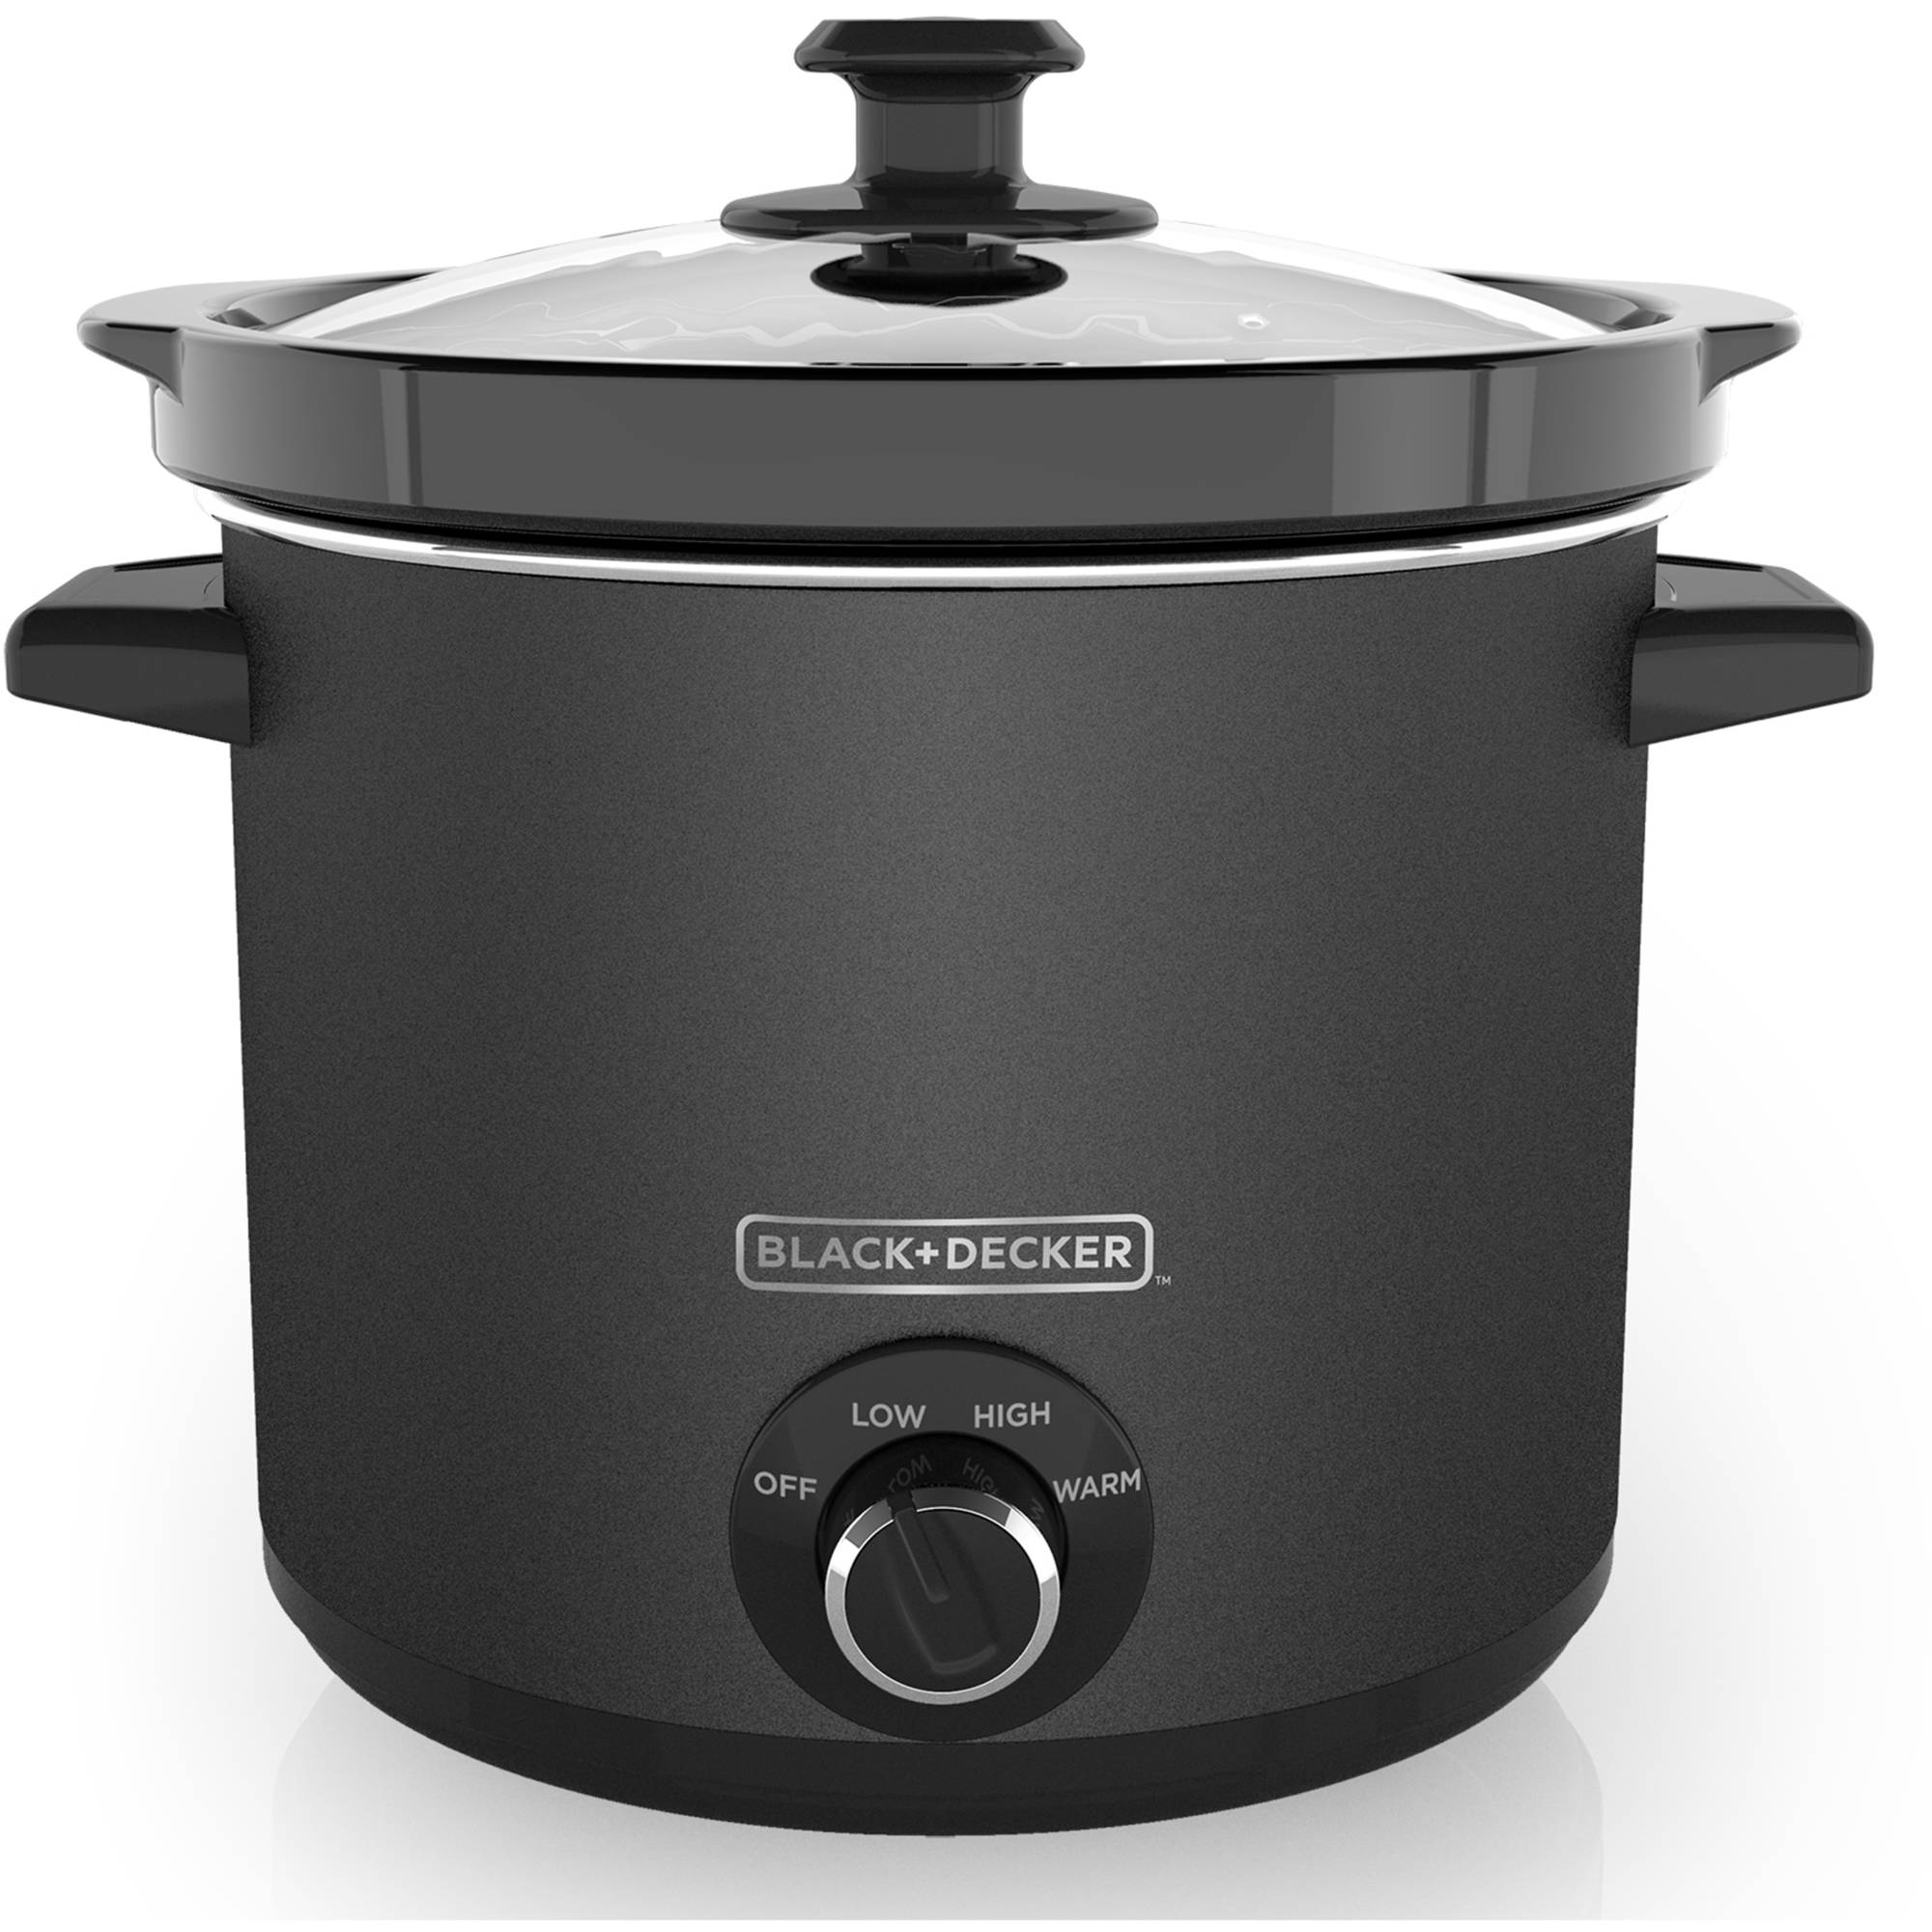 BLACK+DECKER SC4004D 4 Quart Dial Control Slow Cooker with Built in